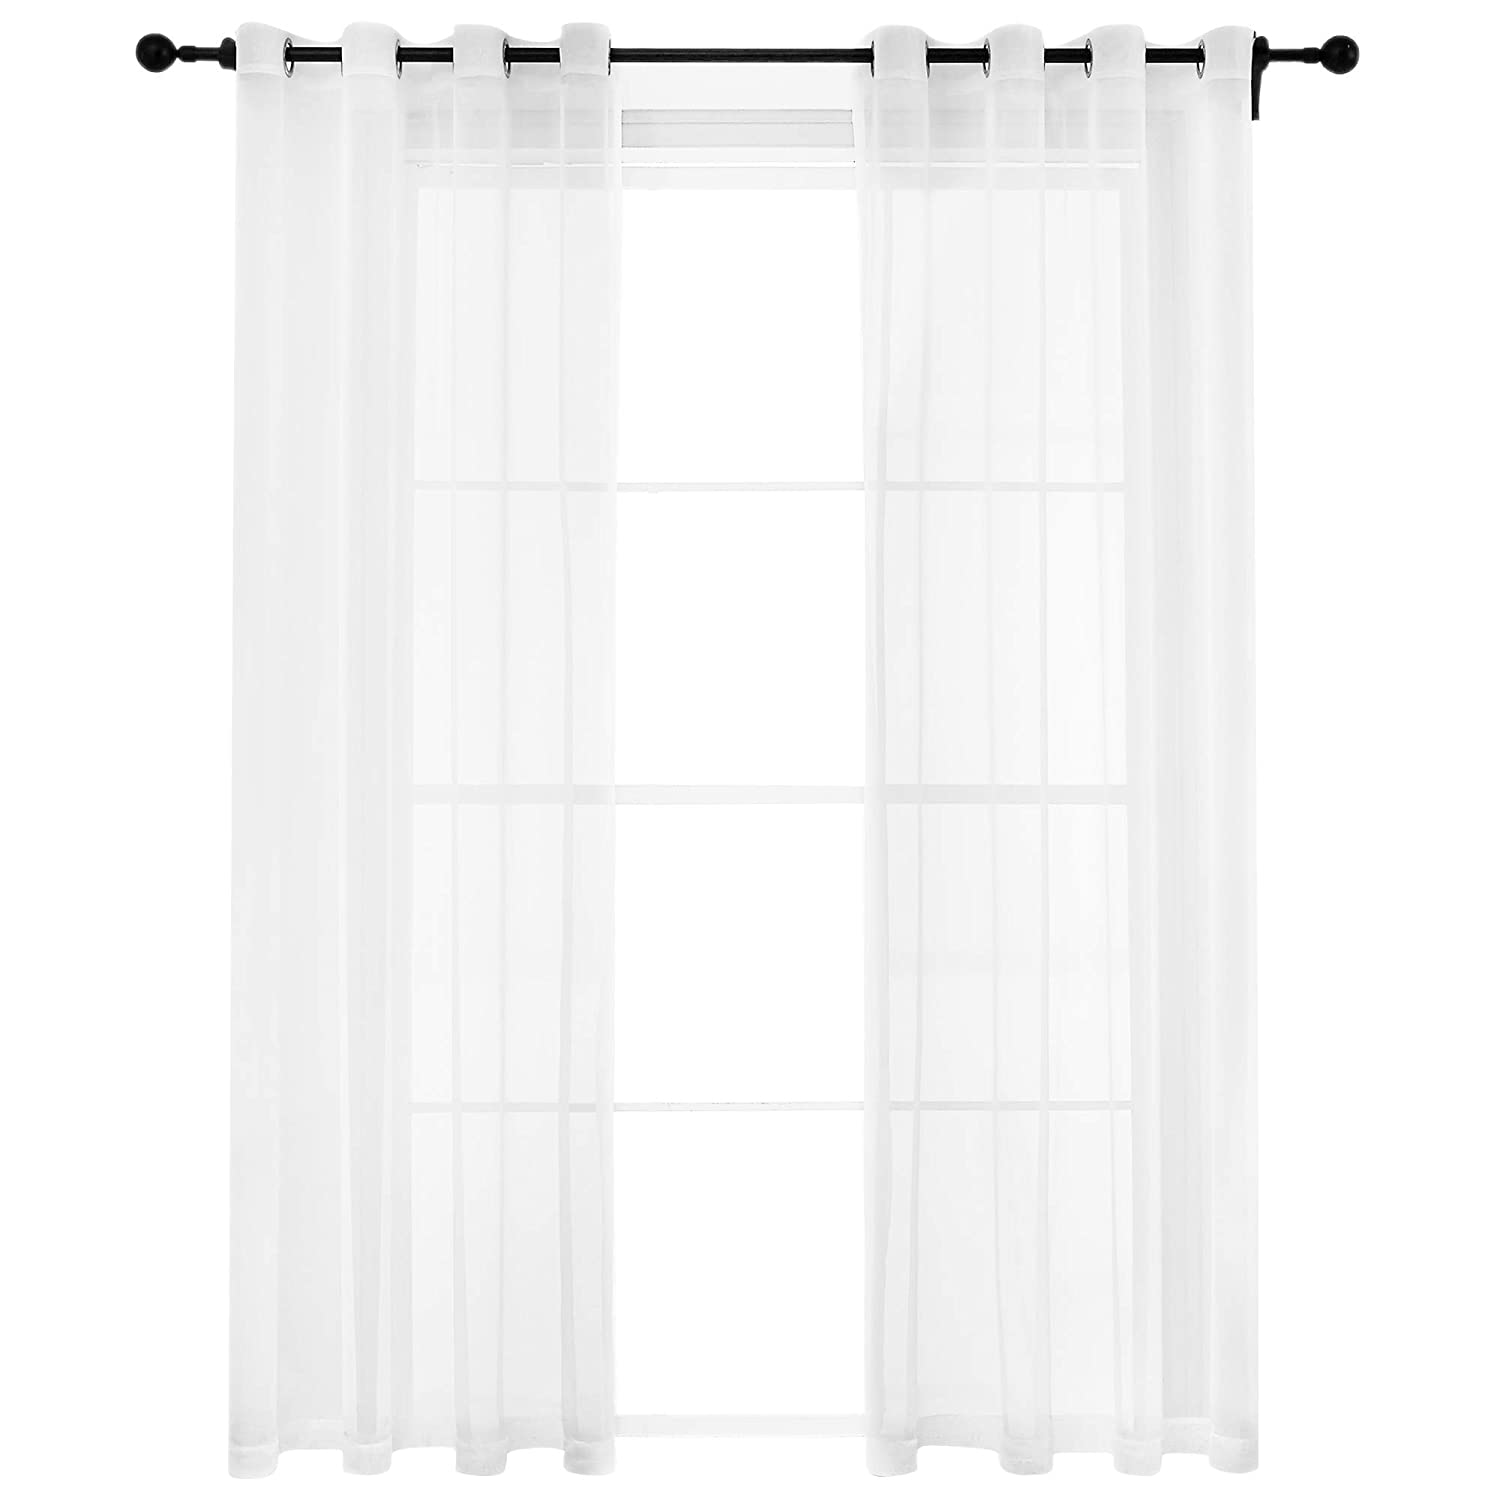 112dc4dac18 Amazon.com  White Sheer Curtains Voile Grommet Semi Sheer Curtains for  Bedroom Living Room Set of 2 Curtain Panels 54 x 84 inch  Home   Kitchen